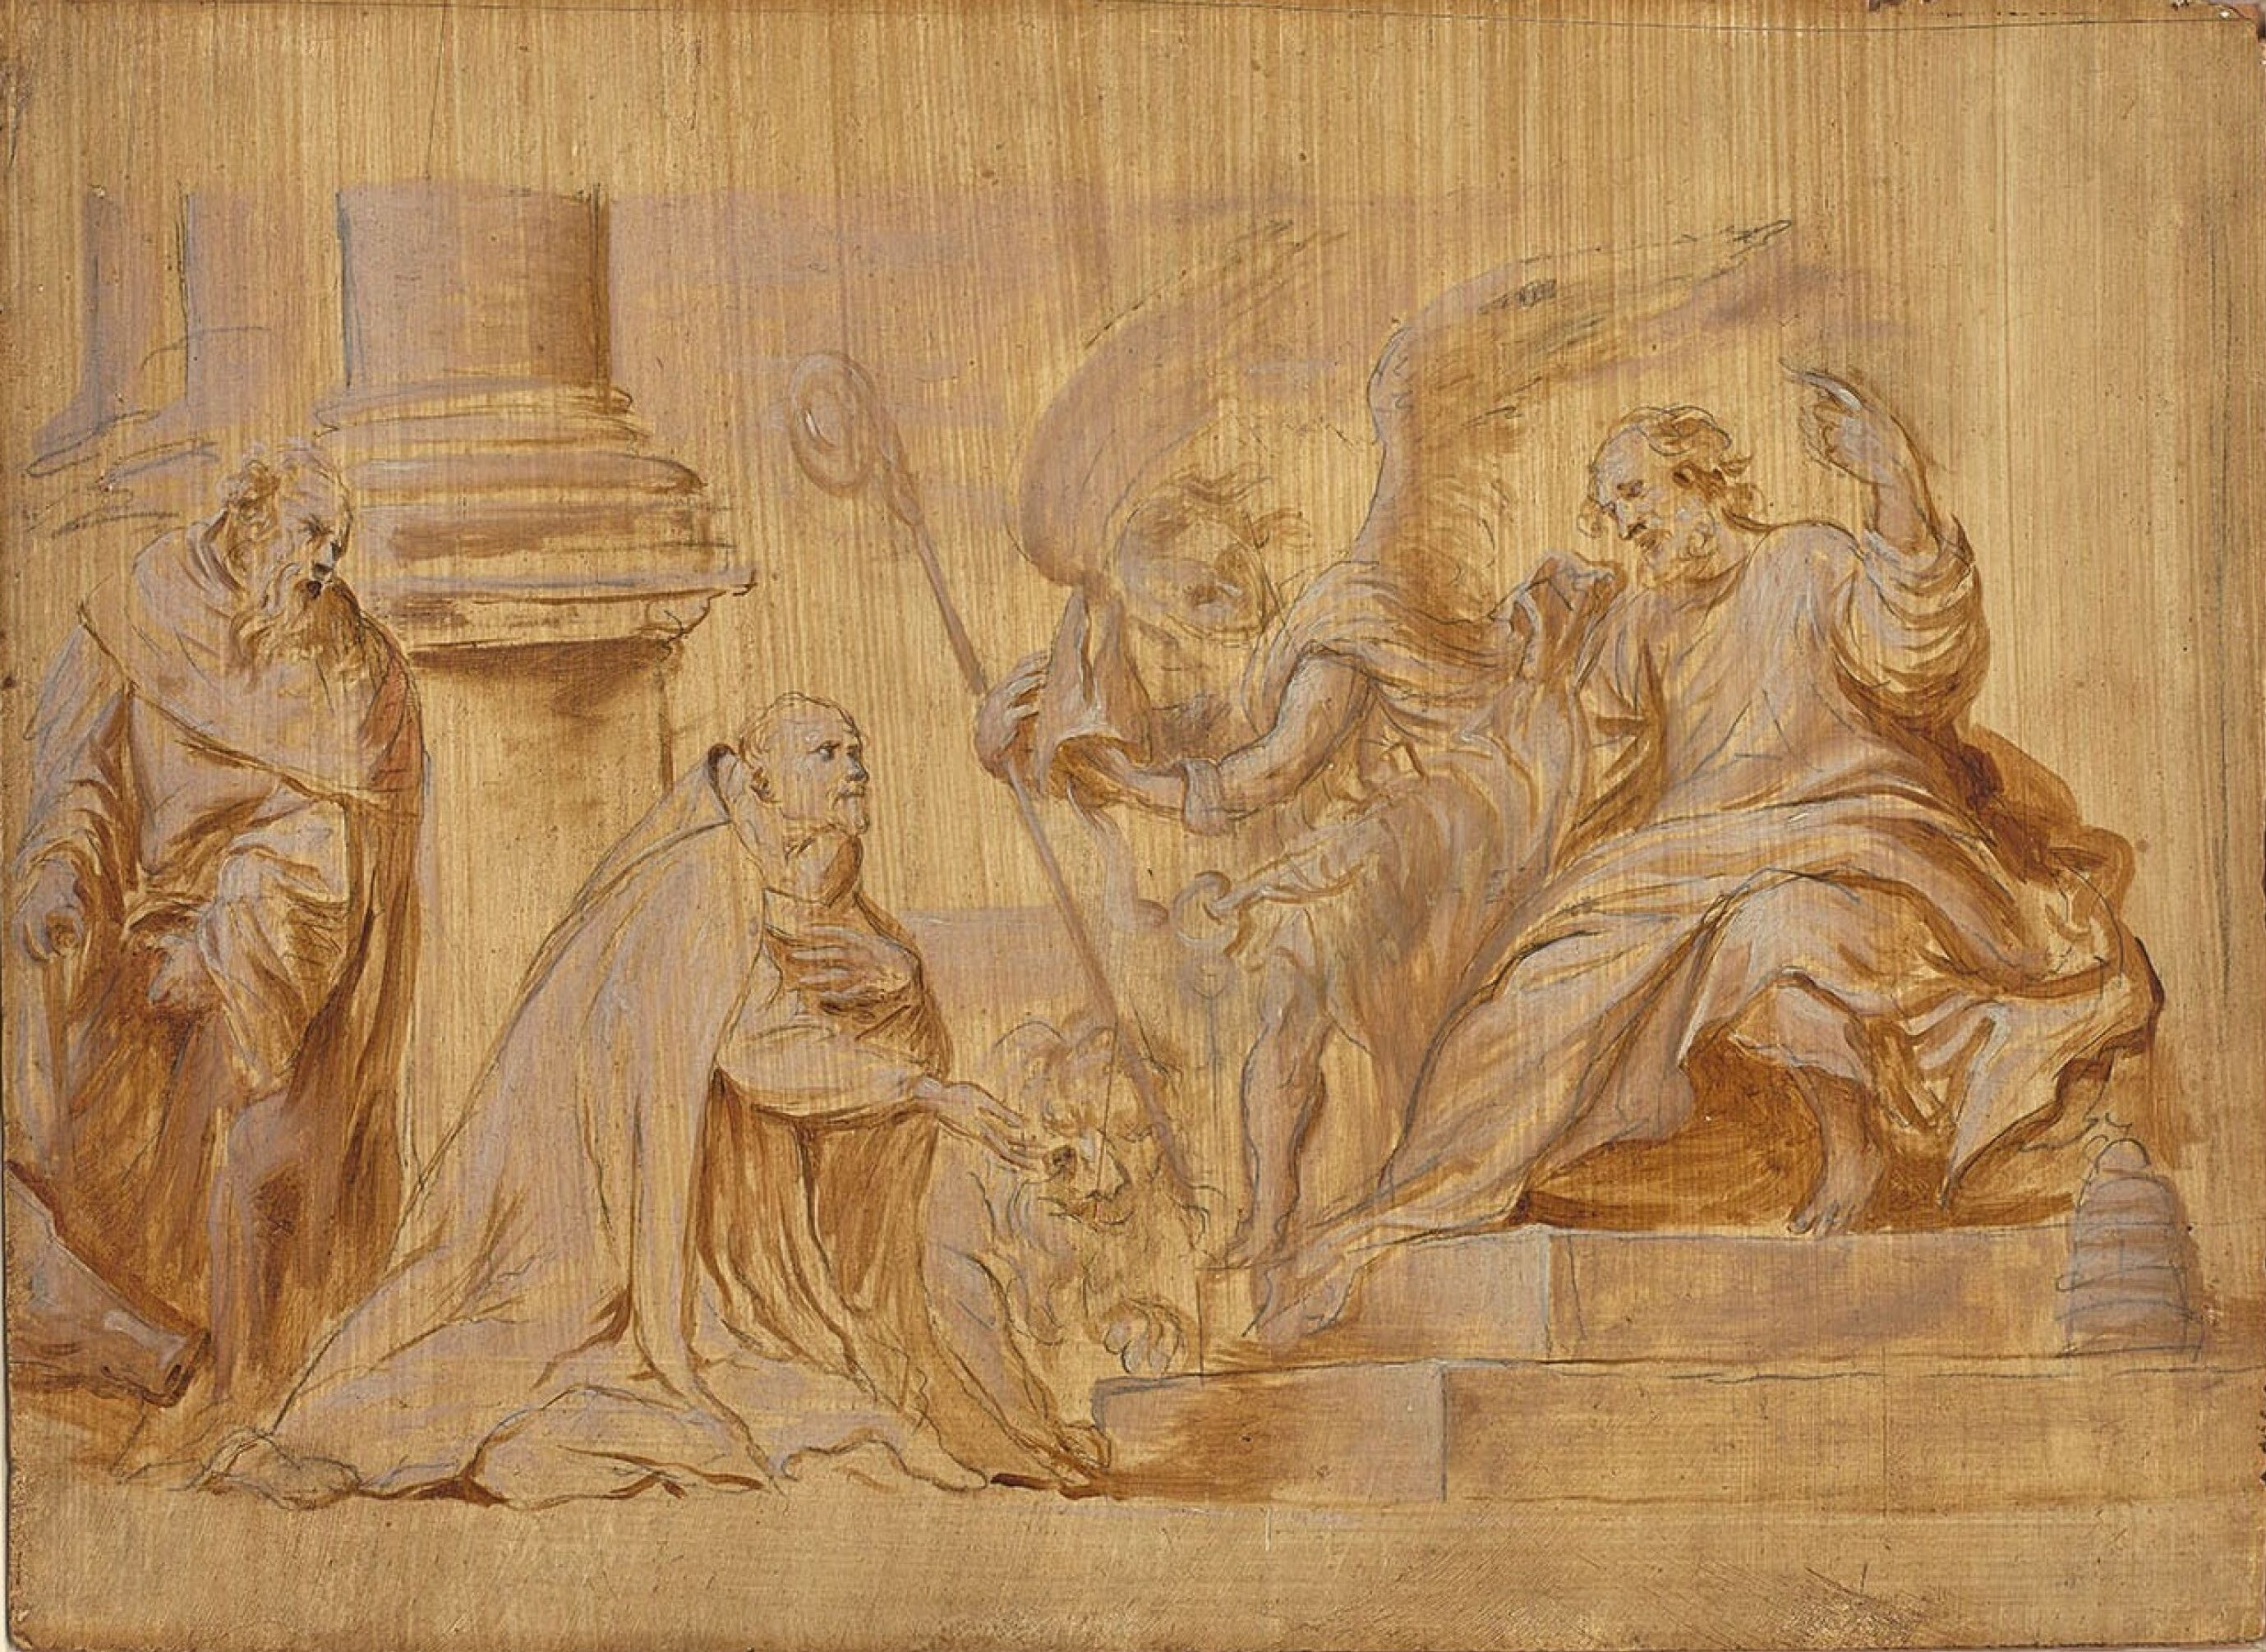 Bishop Kneeling before St Peter